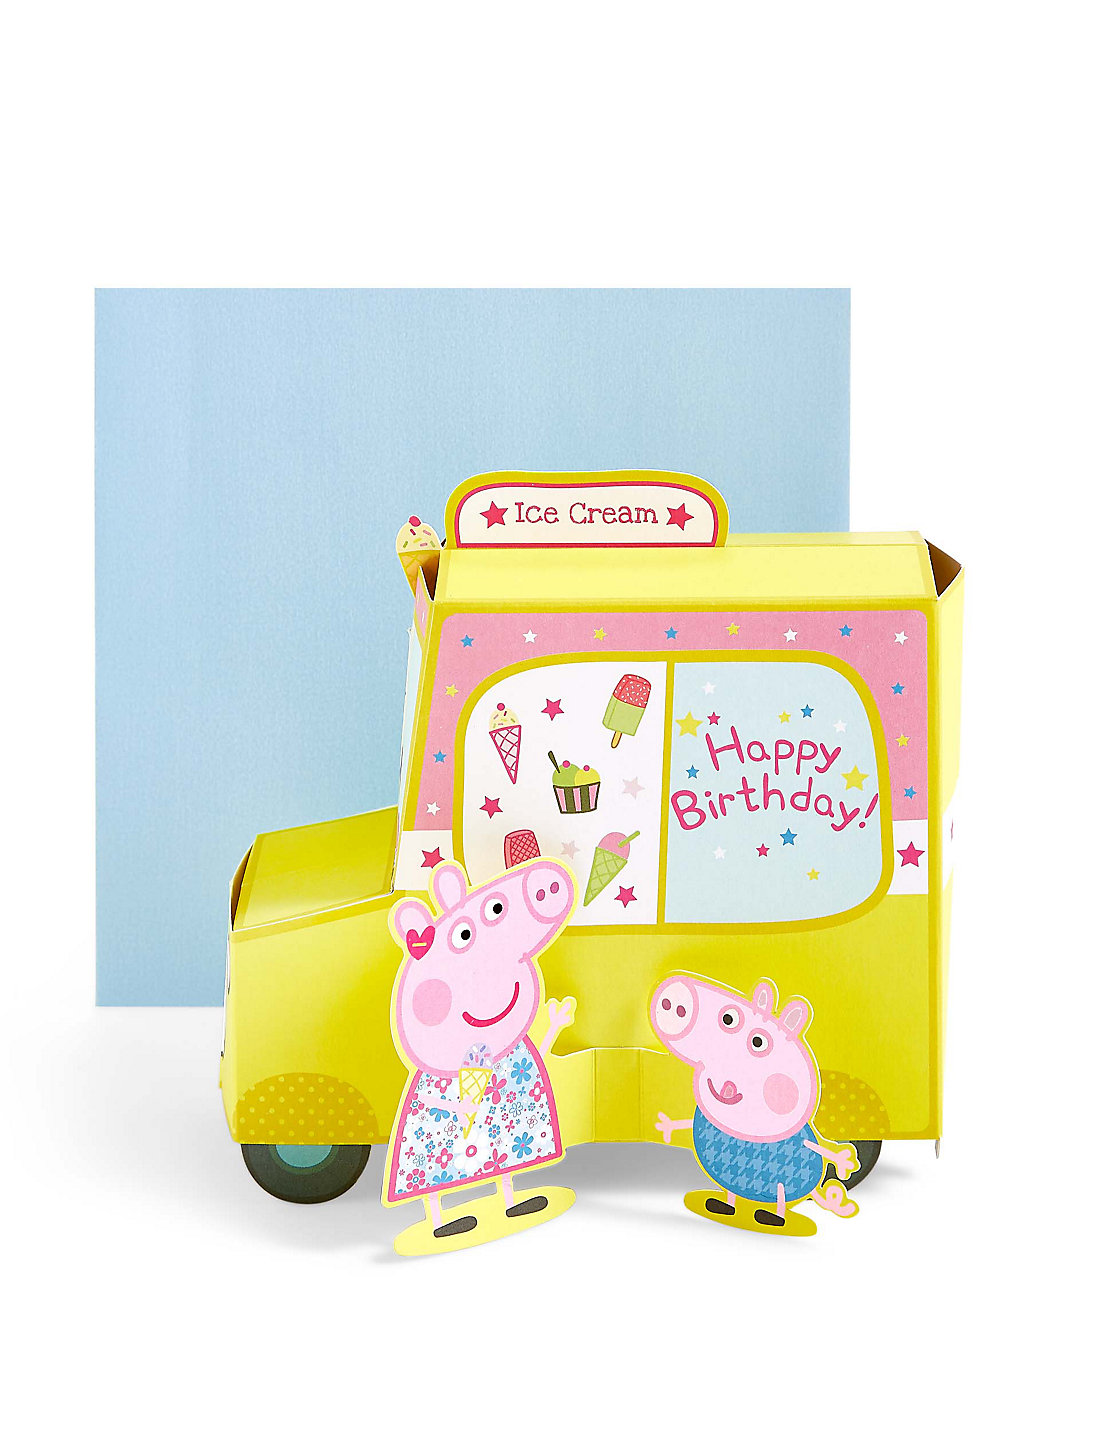 Kids cards birthday cards greeting cards for children ms pop up peppa pigtrade ice cream van birthday card kristyandbryce Image collections